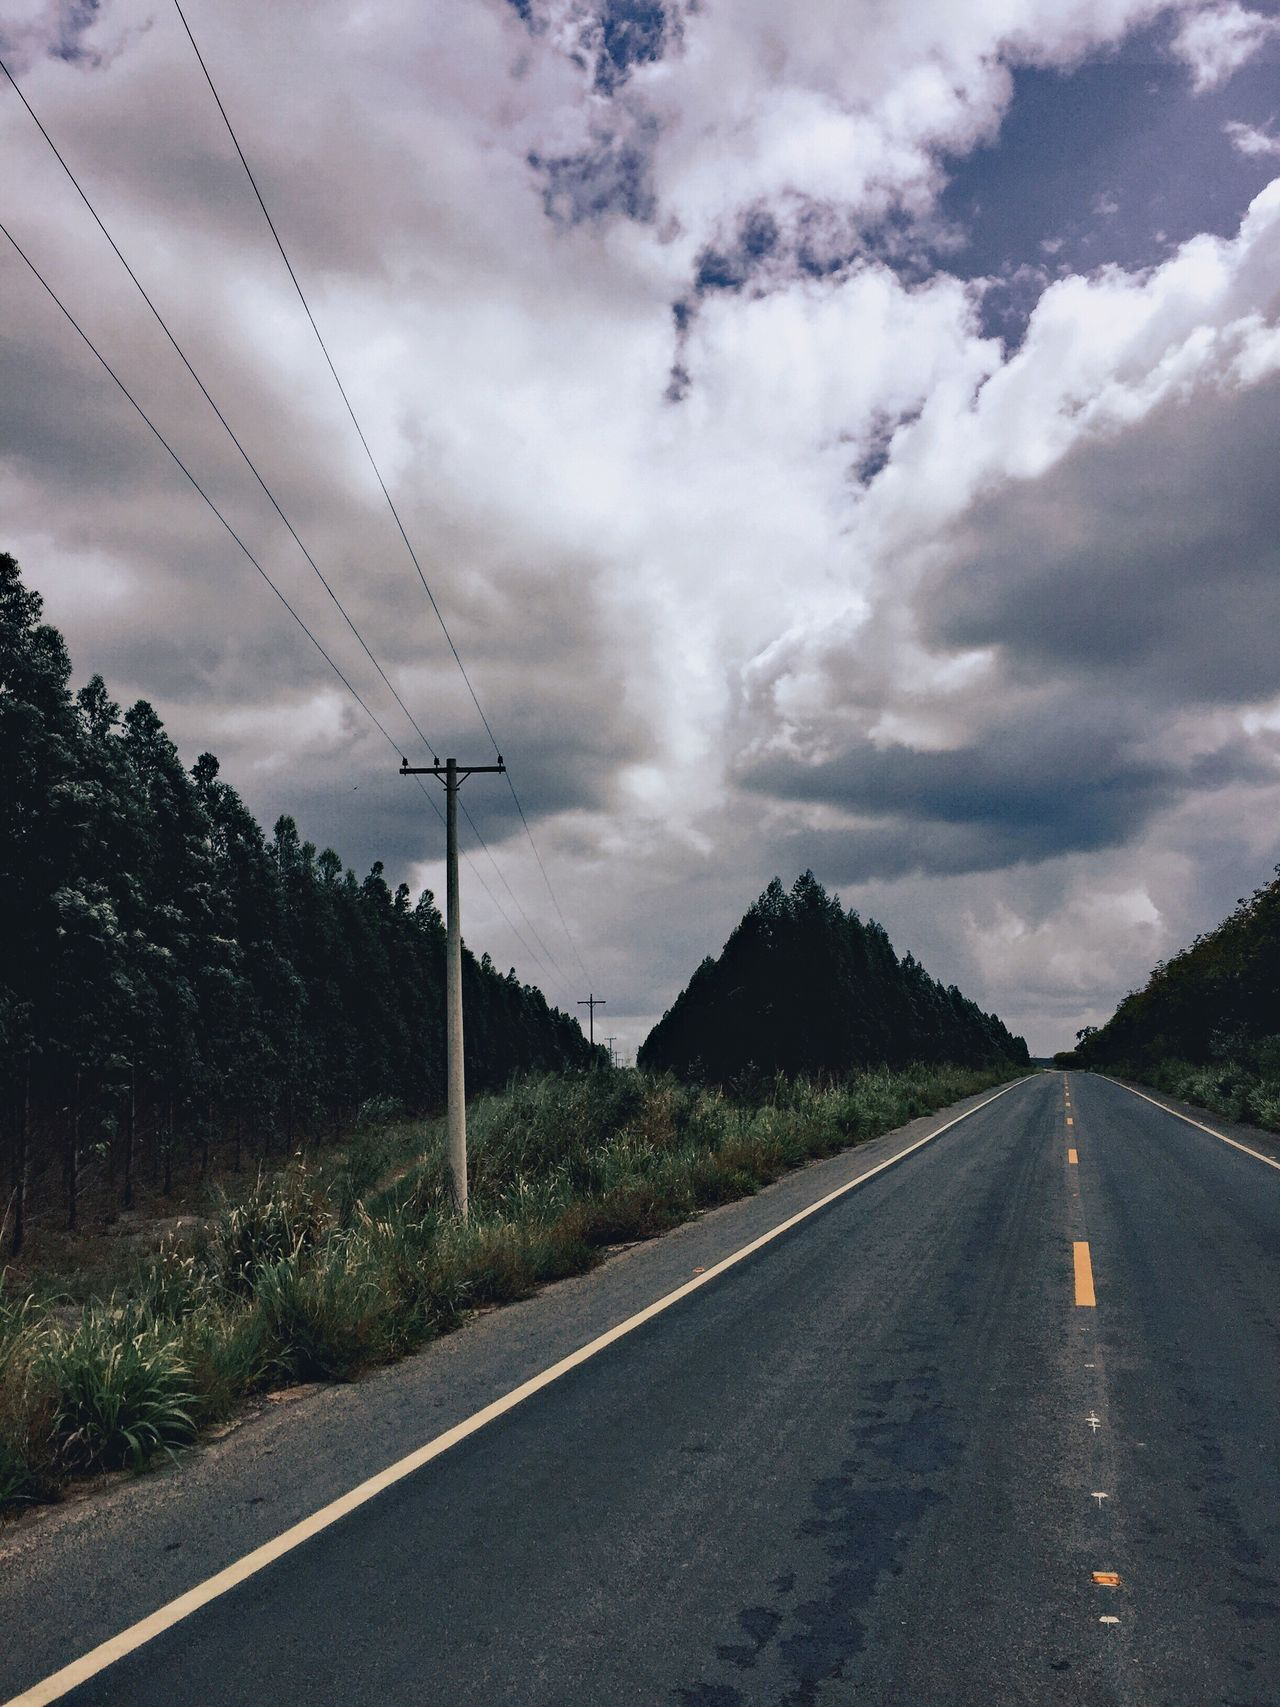 The Road Ahead Road Distant Perspective Sky Vanishing Point Signs On The Asphalt Road Cloud Cloudy Cloudy Day Tree Empty Road Long Eletricity Empty Quiet Tranquility Landscape Nature Climate Natural Beauty Outdoors Outdoor Air Free